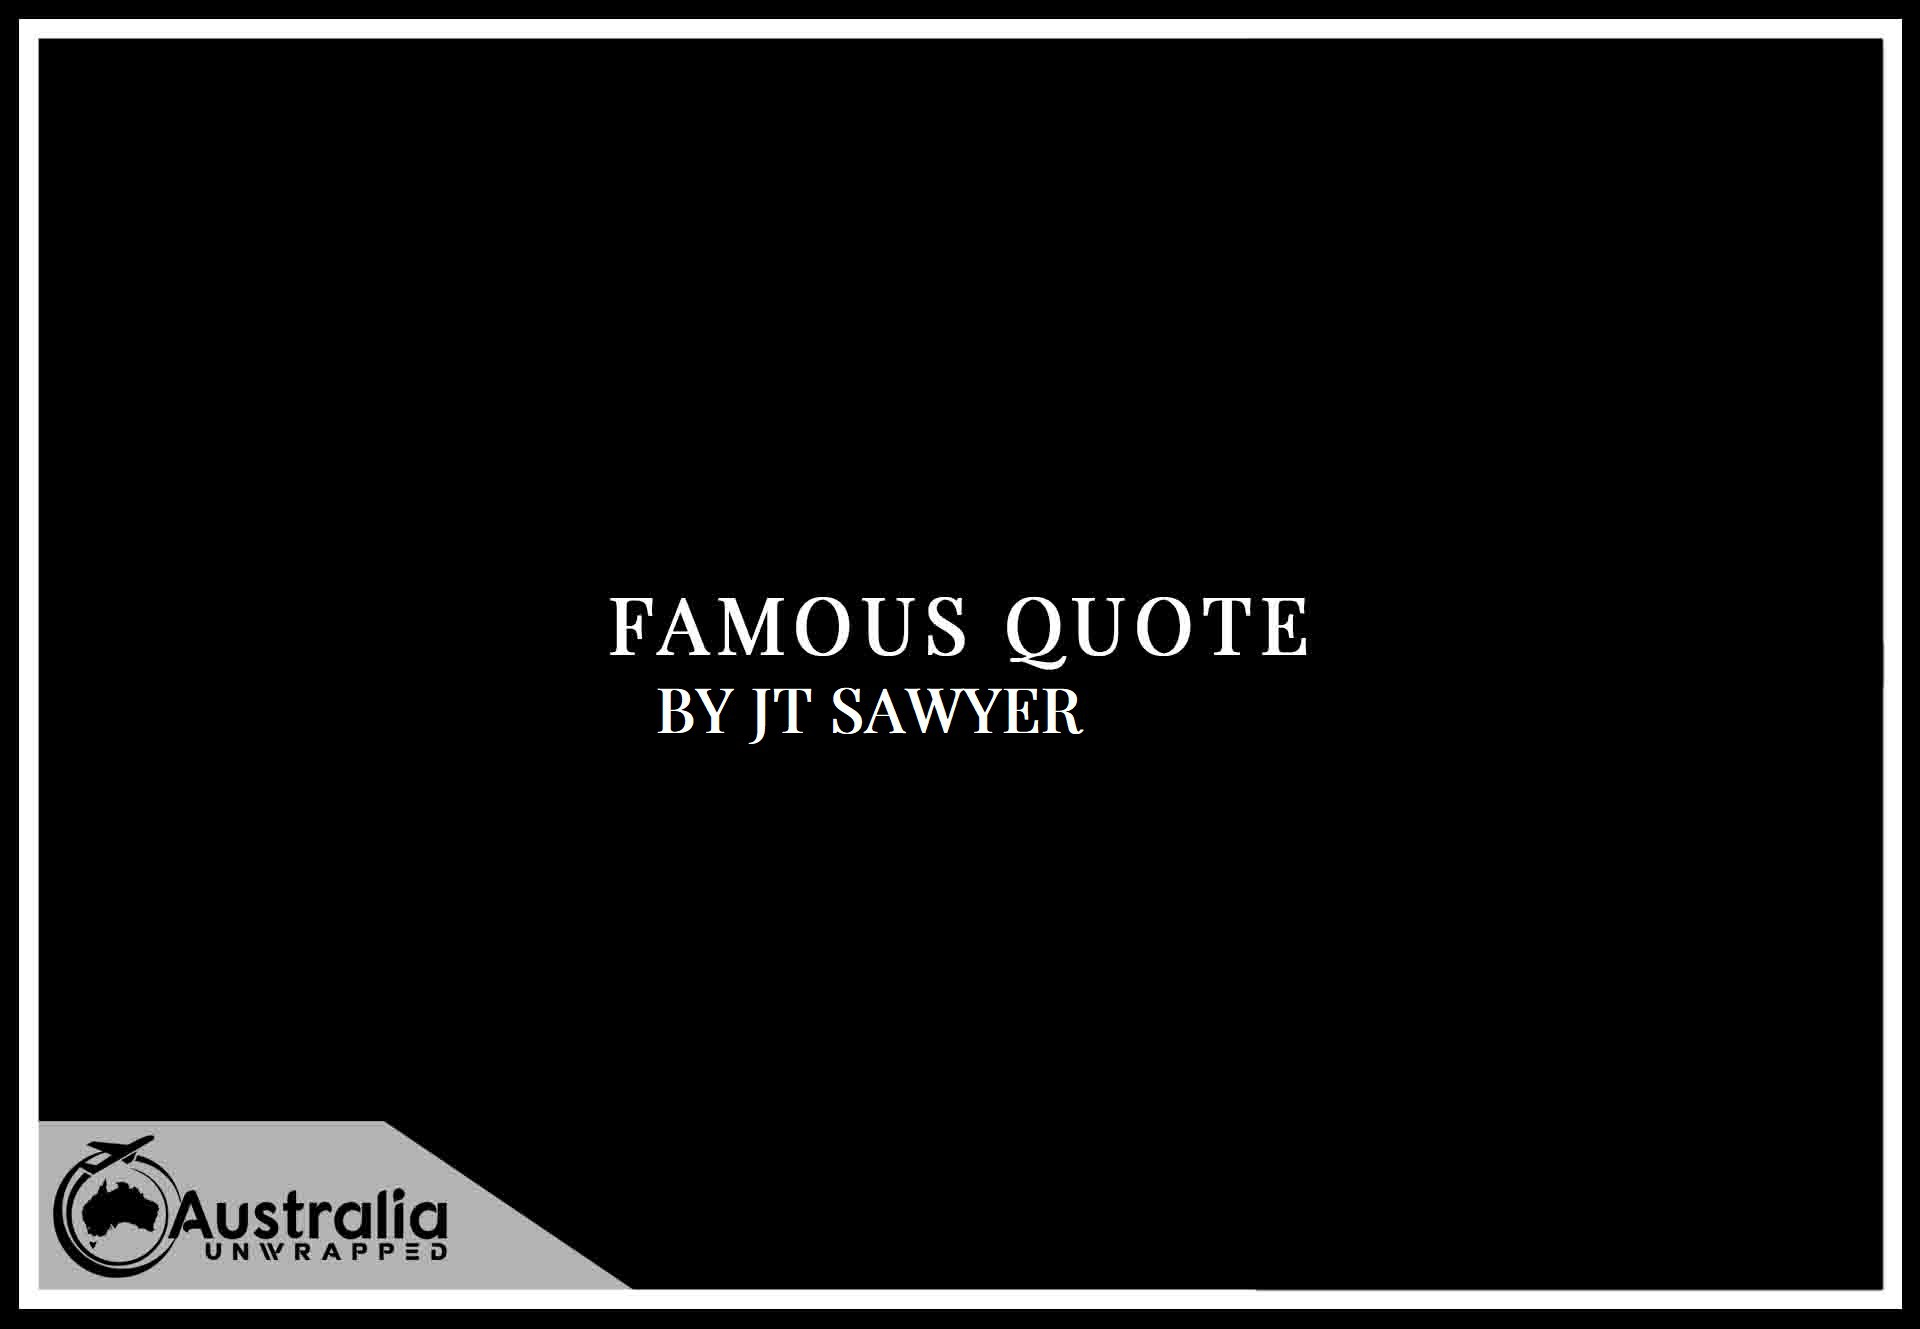 Top 1 Famous Quotes by Author J.T. Sawyer